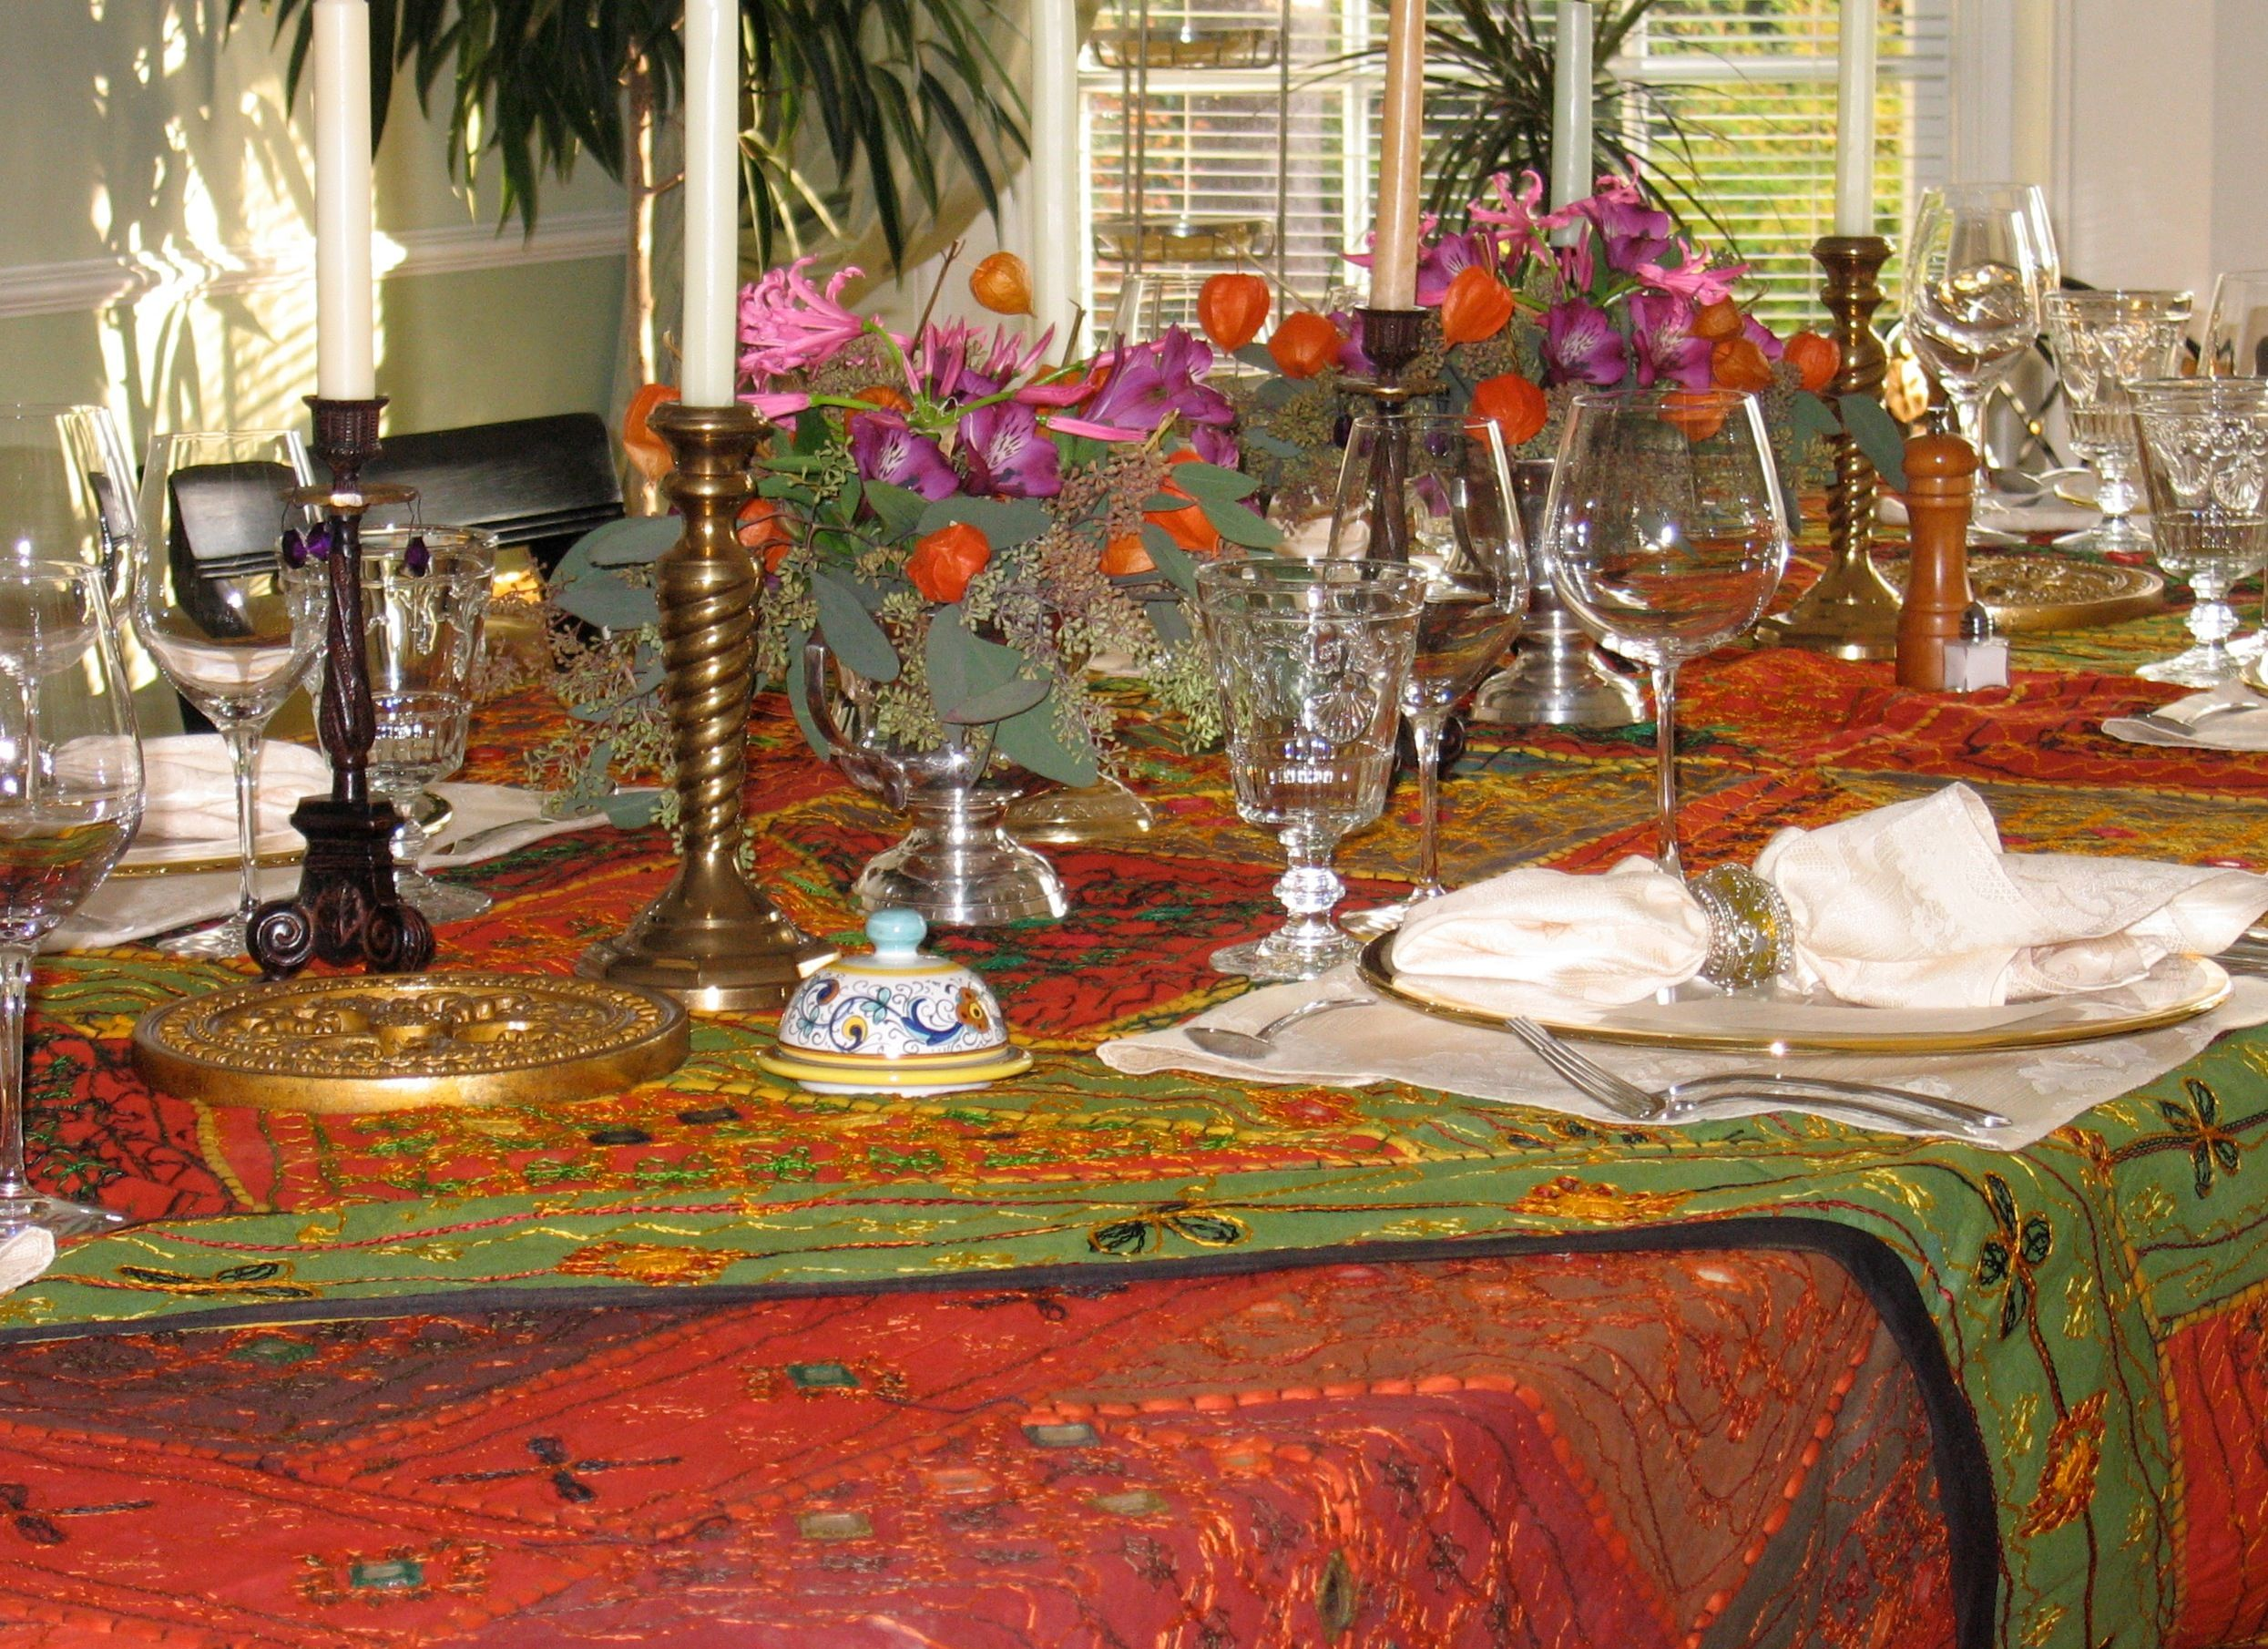 Dining Room Table Set Up For Intimate Moroccan Dinner Villa Marco Polo Inn